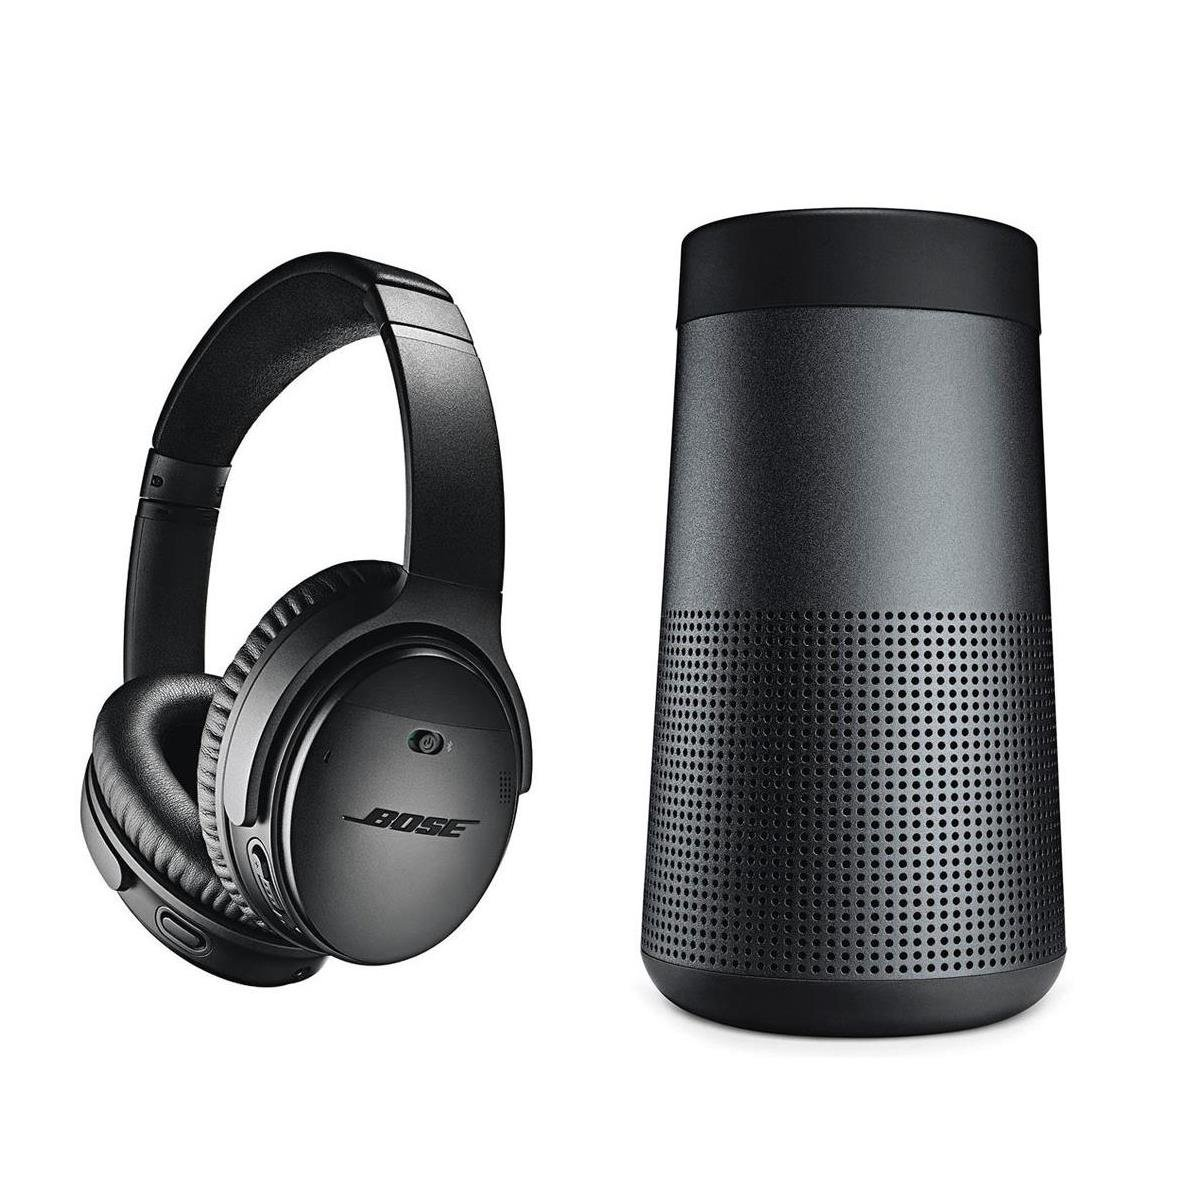 Bose QuietComfort 35 Wireless Headphones II with Microphone, Noise Cancelling, Black - With Bose SoundLink Revolve Bluetooth Speaker, Triple Black